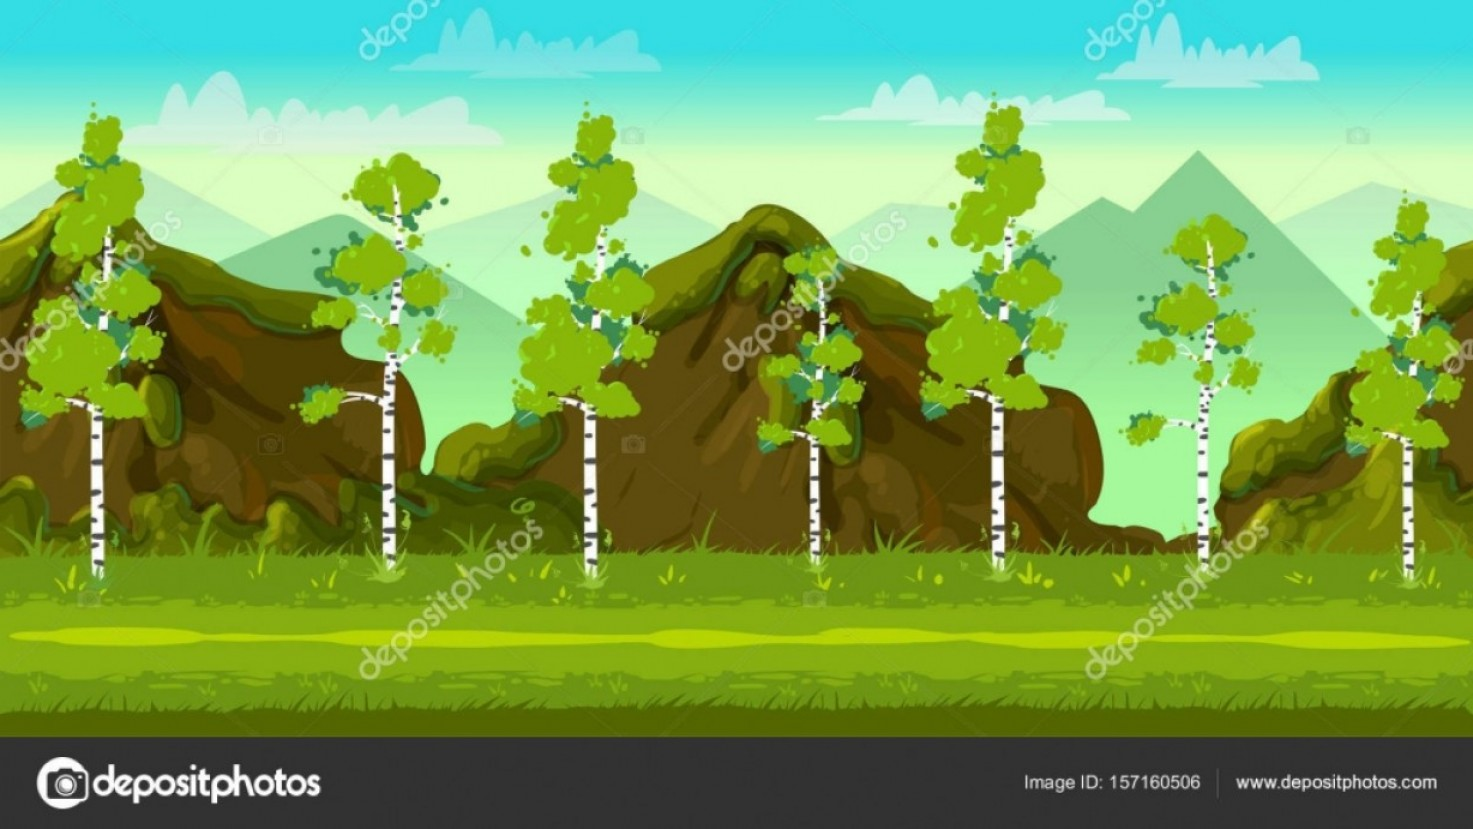 Vector Applications On Computers: Stock Illustration Forest And Stones D Game